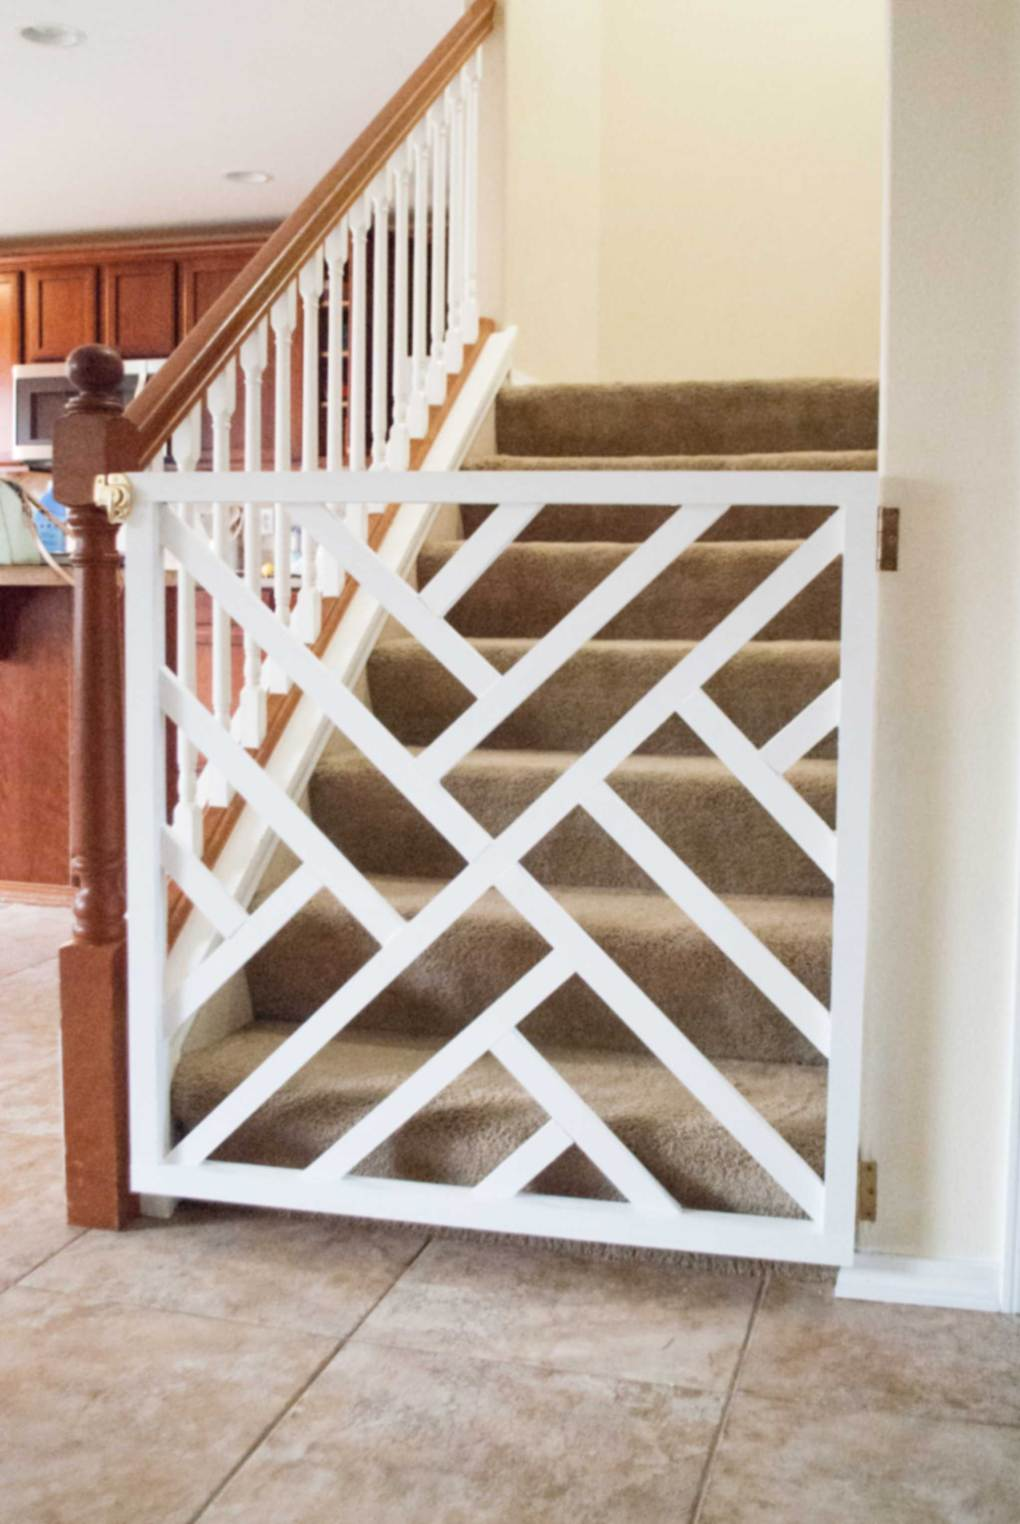 Chippemdale Baby Gate